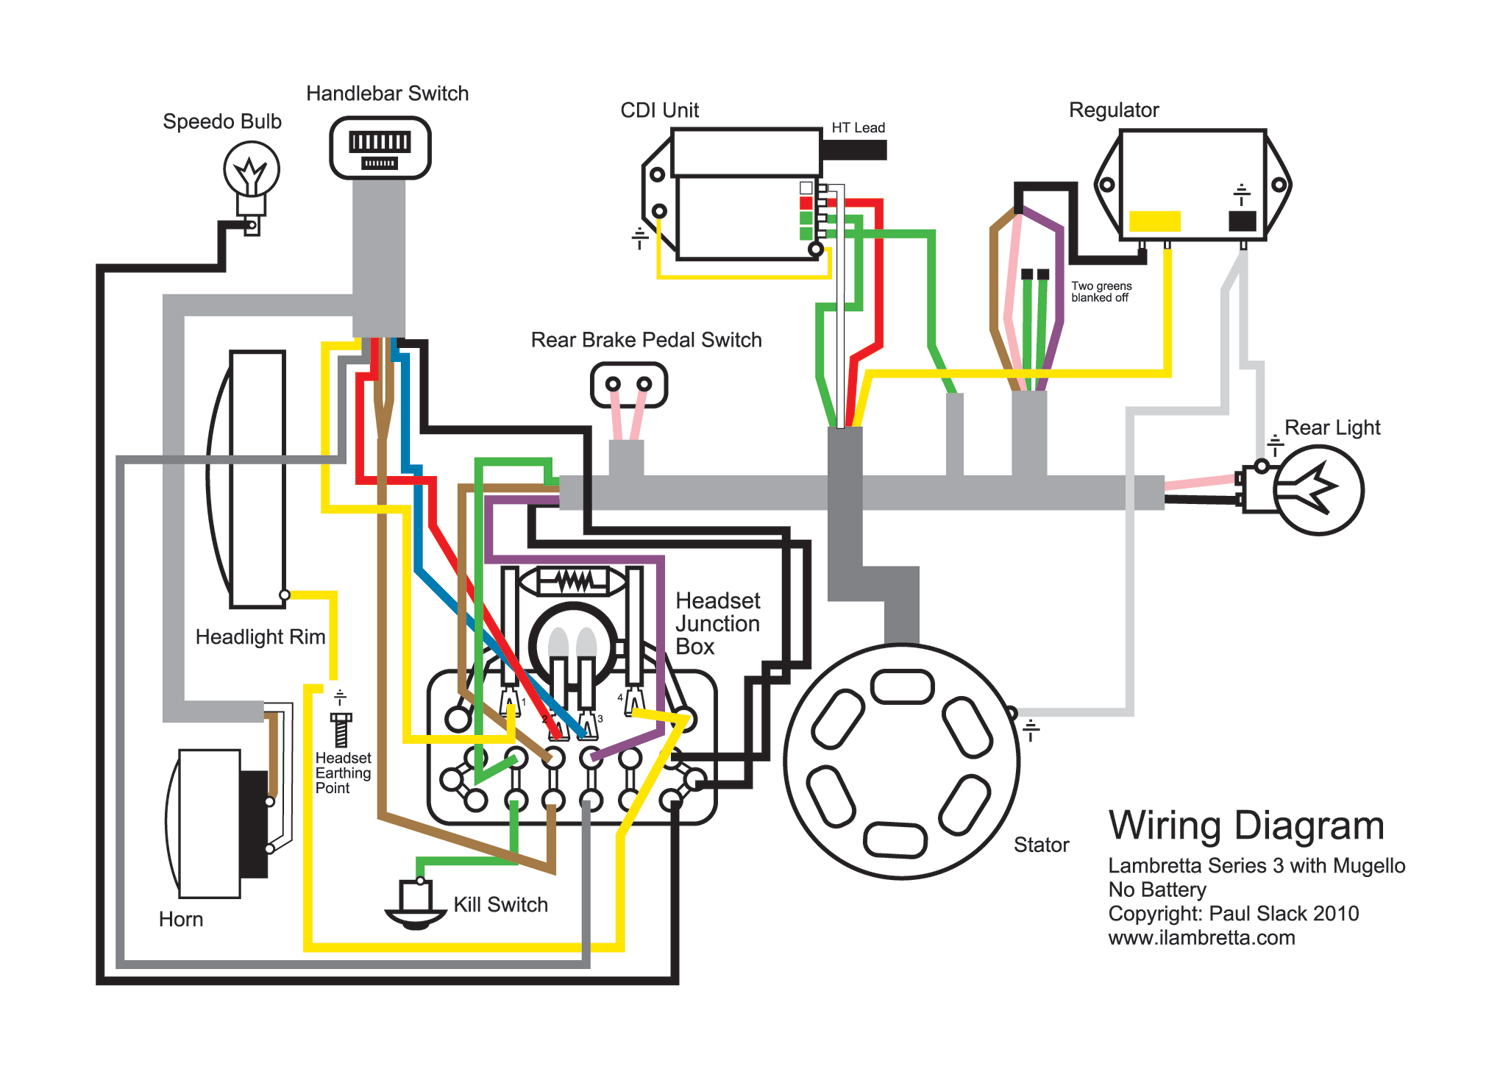 Li150 Wiring lambretta wiring diagram outlet wiring \u2022 free wiring diagrams lambretta headset wiring diagram at eliteediting.co